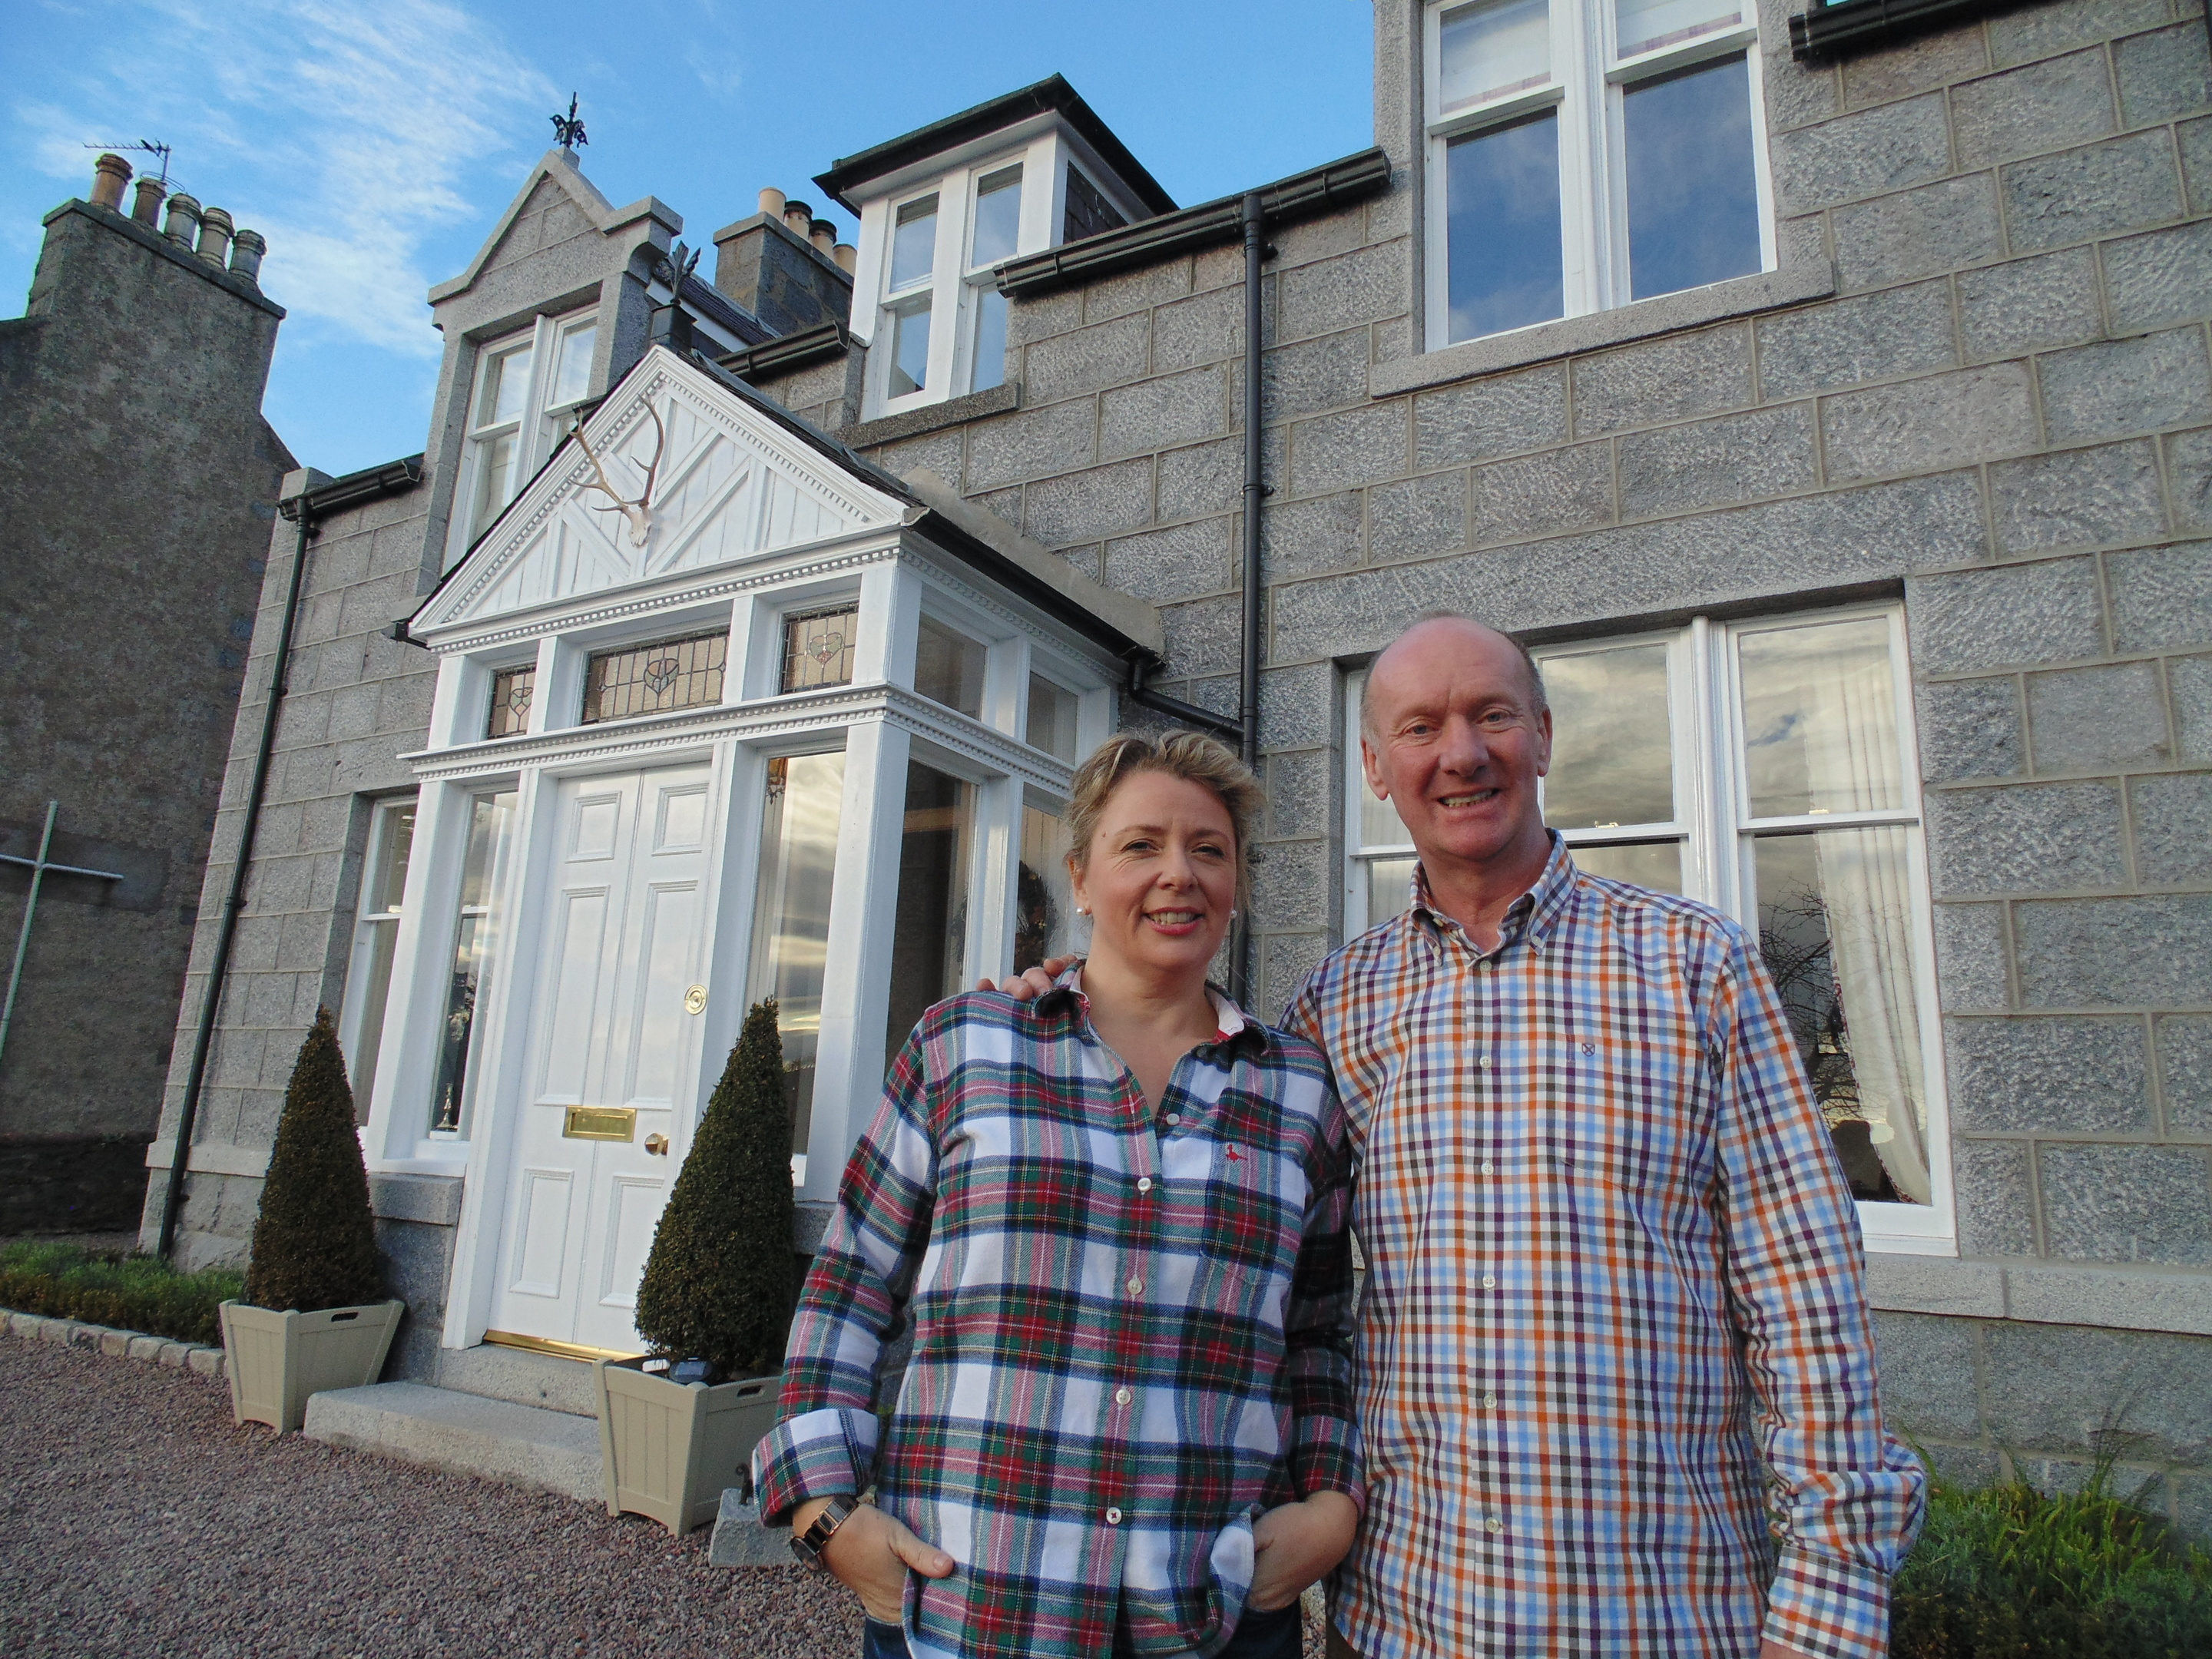 Bob Calder, pictured with his sister-in-law Kirsty Laird,  said he was delighted to have taken the top prize in TV show Four in a Bed.